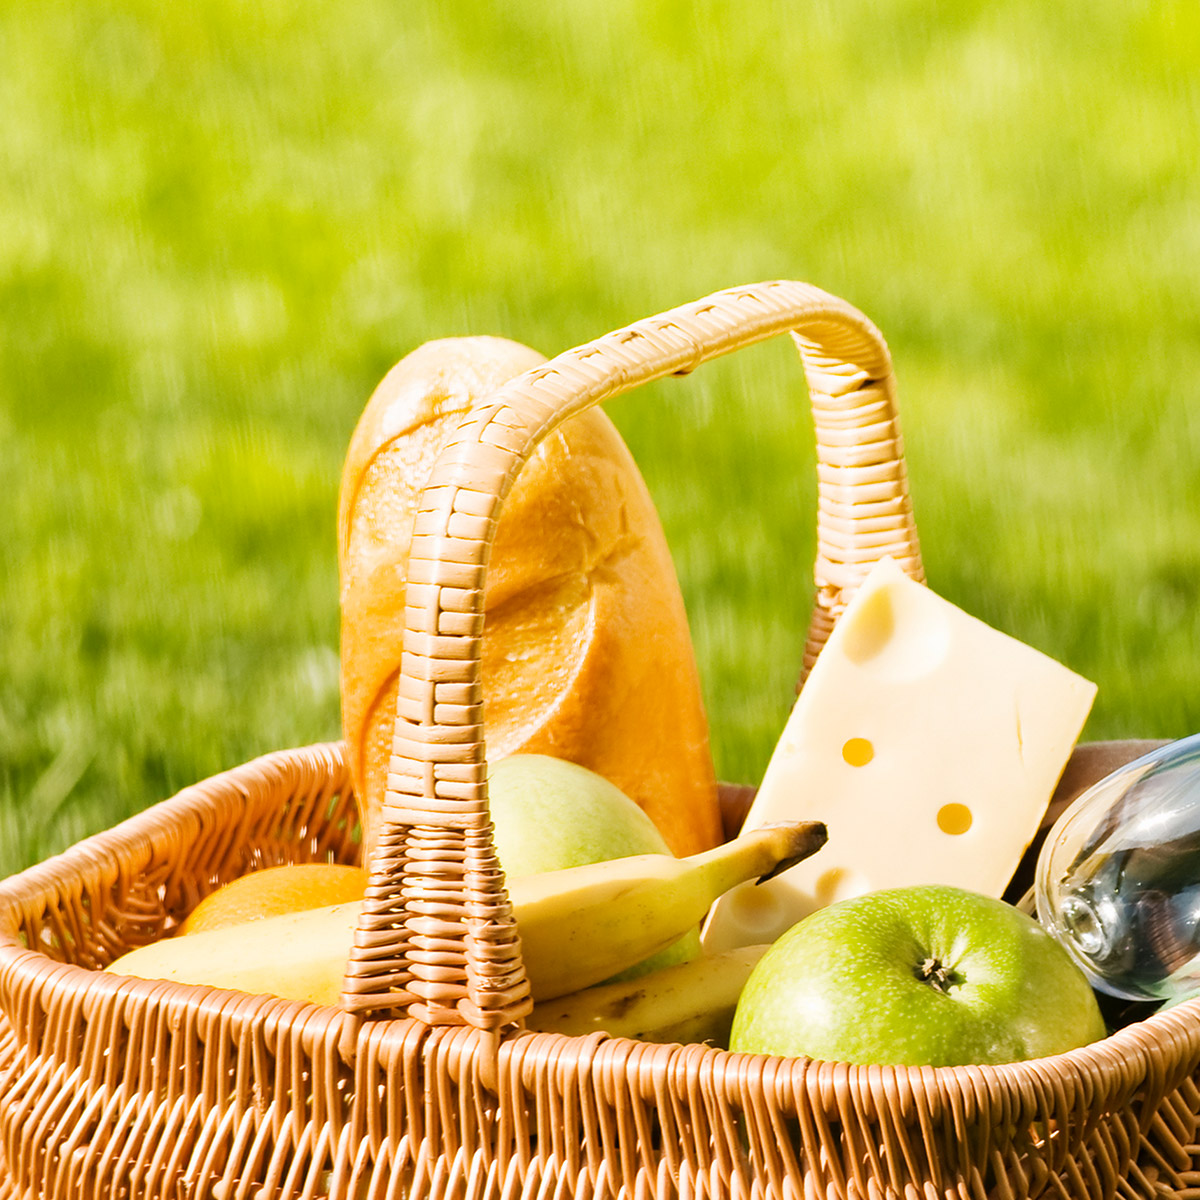 Pinot Grigio Food suggestion - Picnics